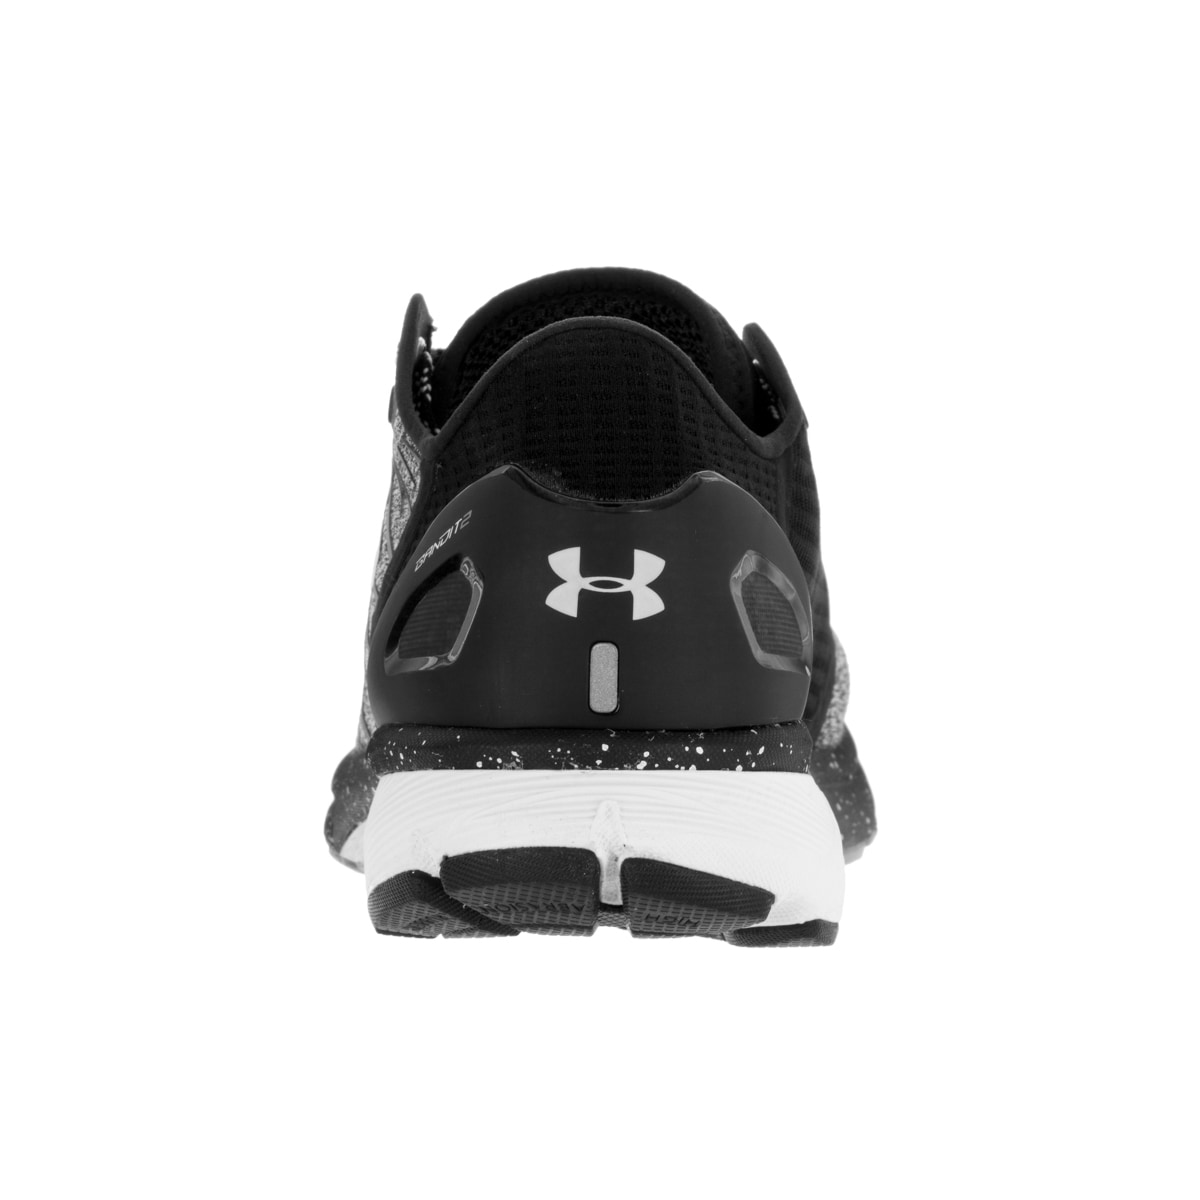 best sneakers a33ce 30460 Under Armour Men's UA Charged Bandit 2 Blk/Blk/Wht Running Shoe